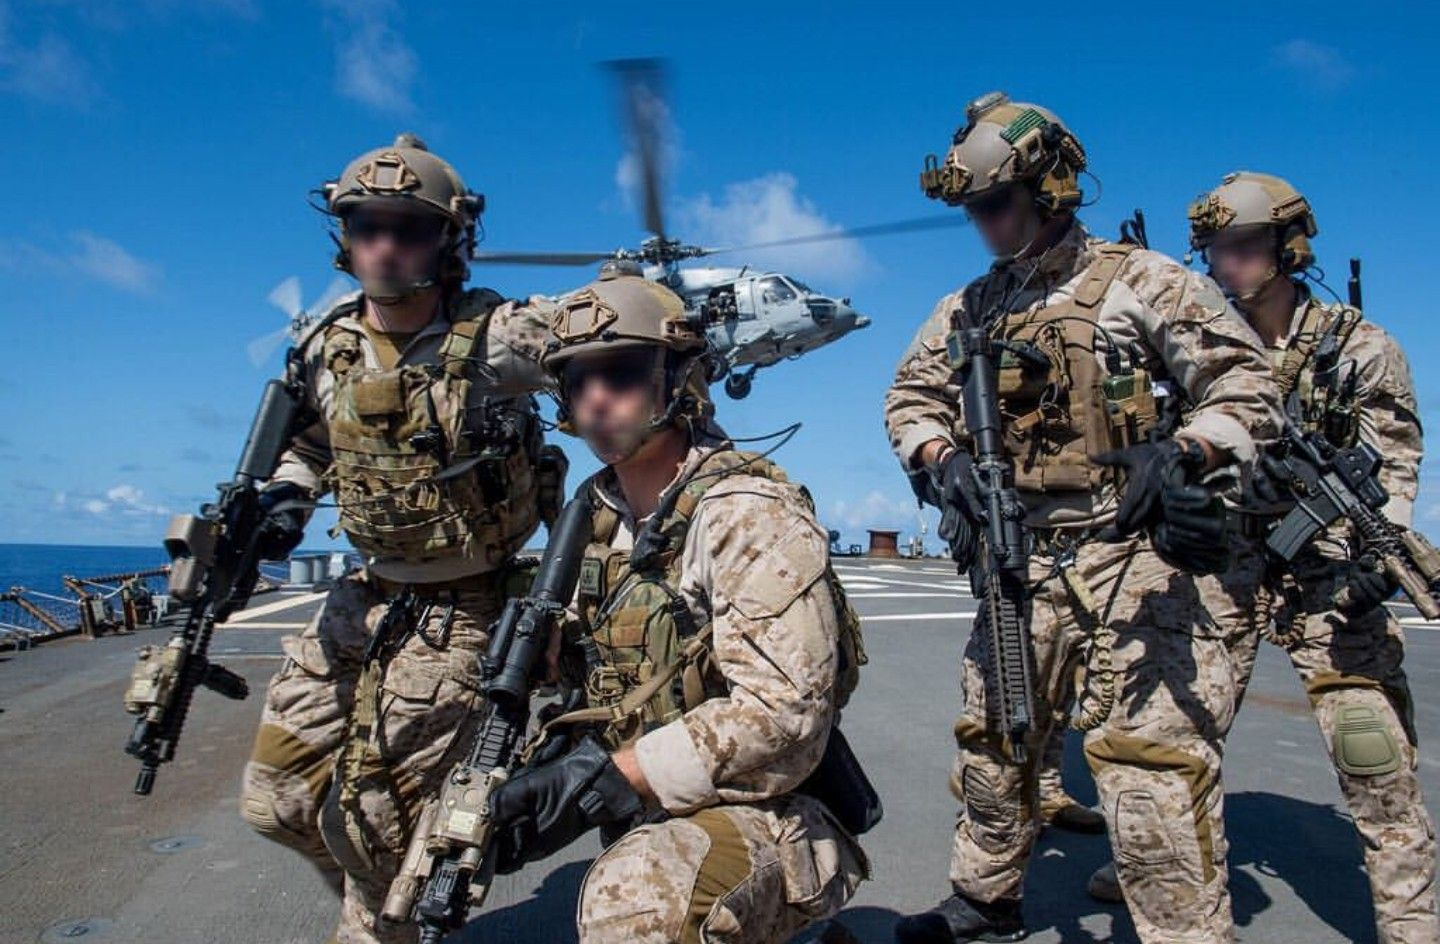 Pin by Cameron on NSW/ NAVY SEALs/ SWCC/ MSRT 2 Navy eod